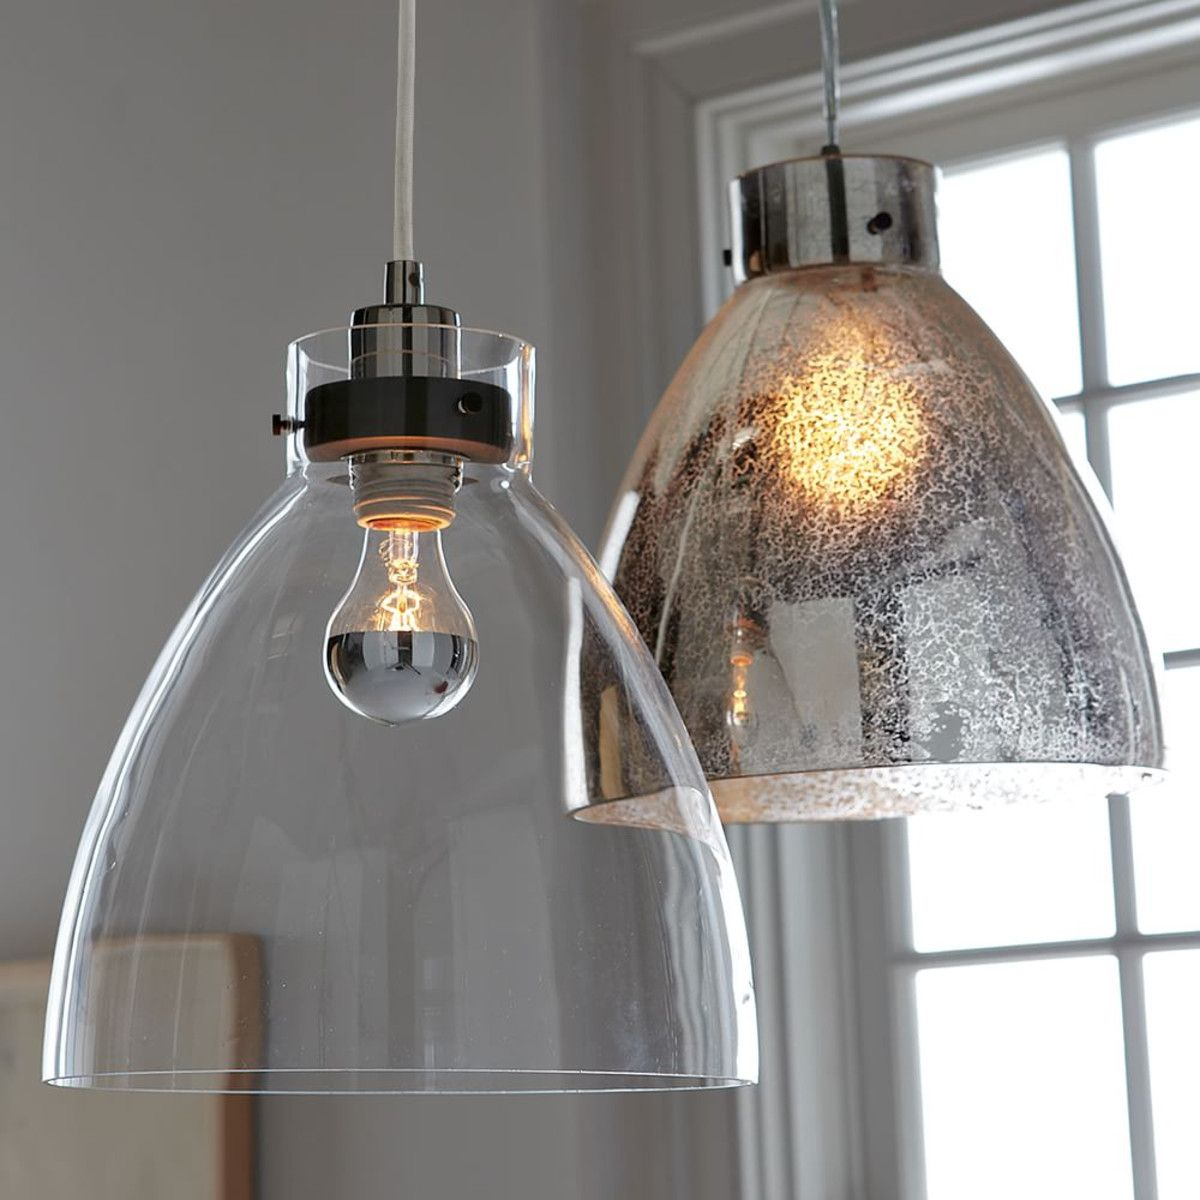 West Elm industrial pendant light in glass. Kitchen island or over kitchen eating table? & West Elm - $149 Industrial Pendant Clear Glass   Lighting ... azcodes.com